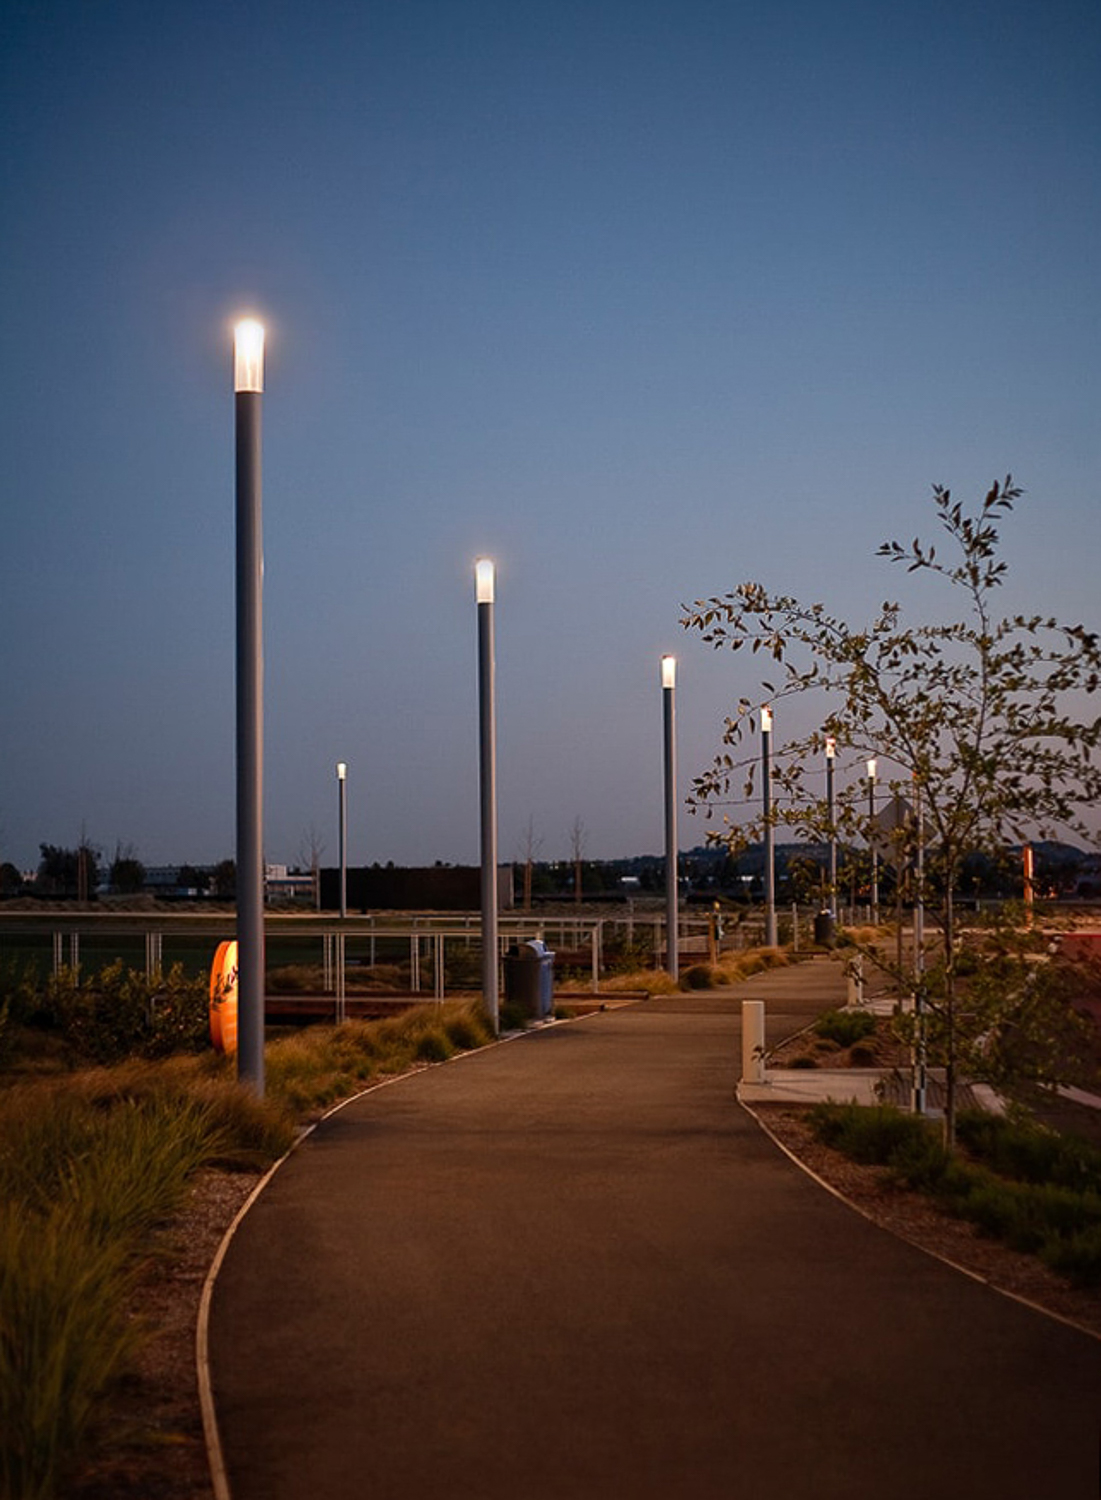 Orange County Park at dusk by lighting design photographer. Walkway with dark sky lighting.